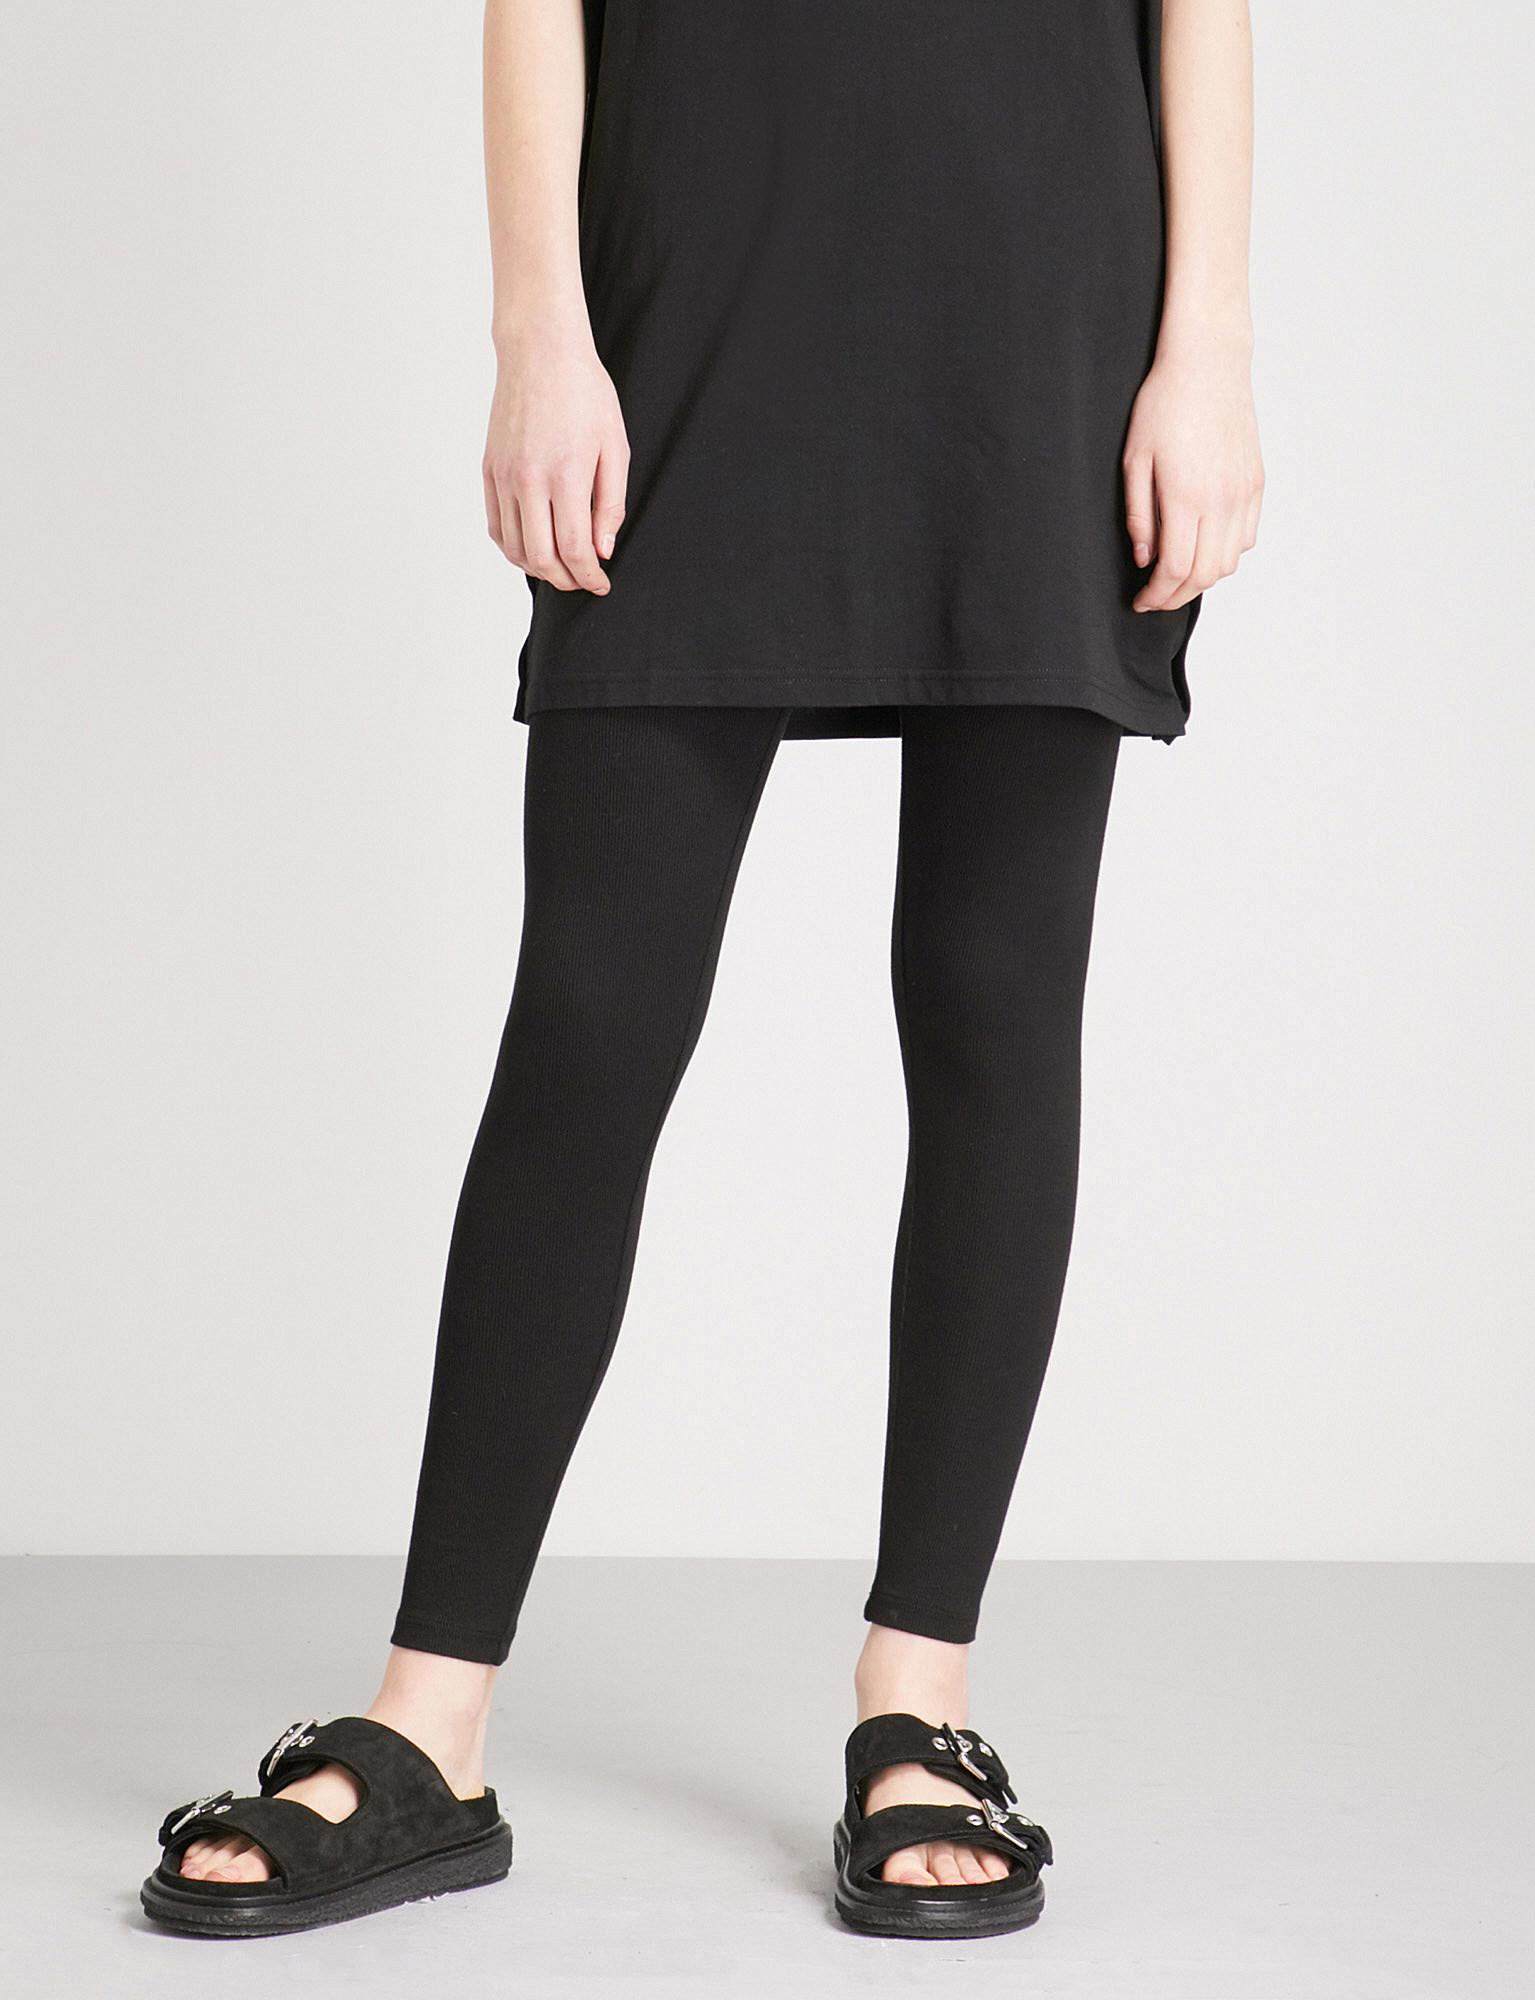 7e7aec0a9e2dae Lyst - James Perse Ribbed Knitted Leggings in Black